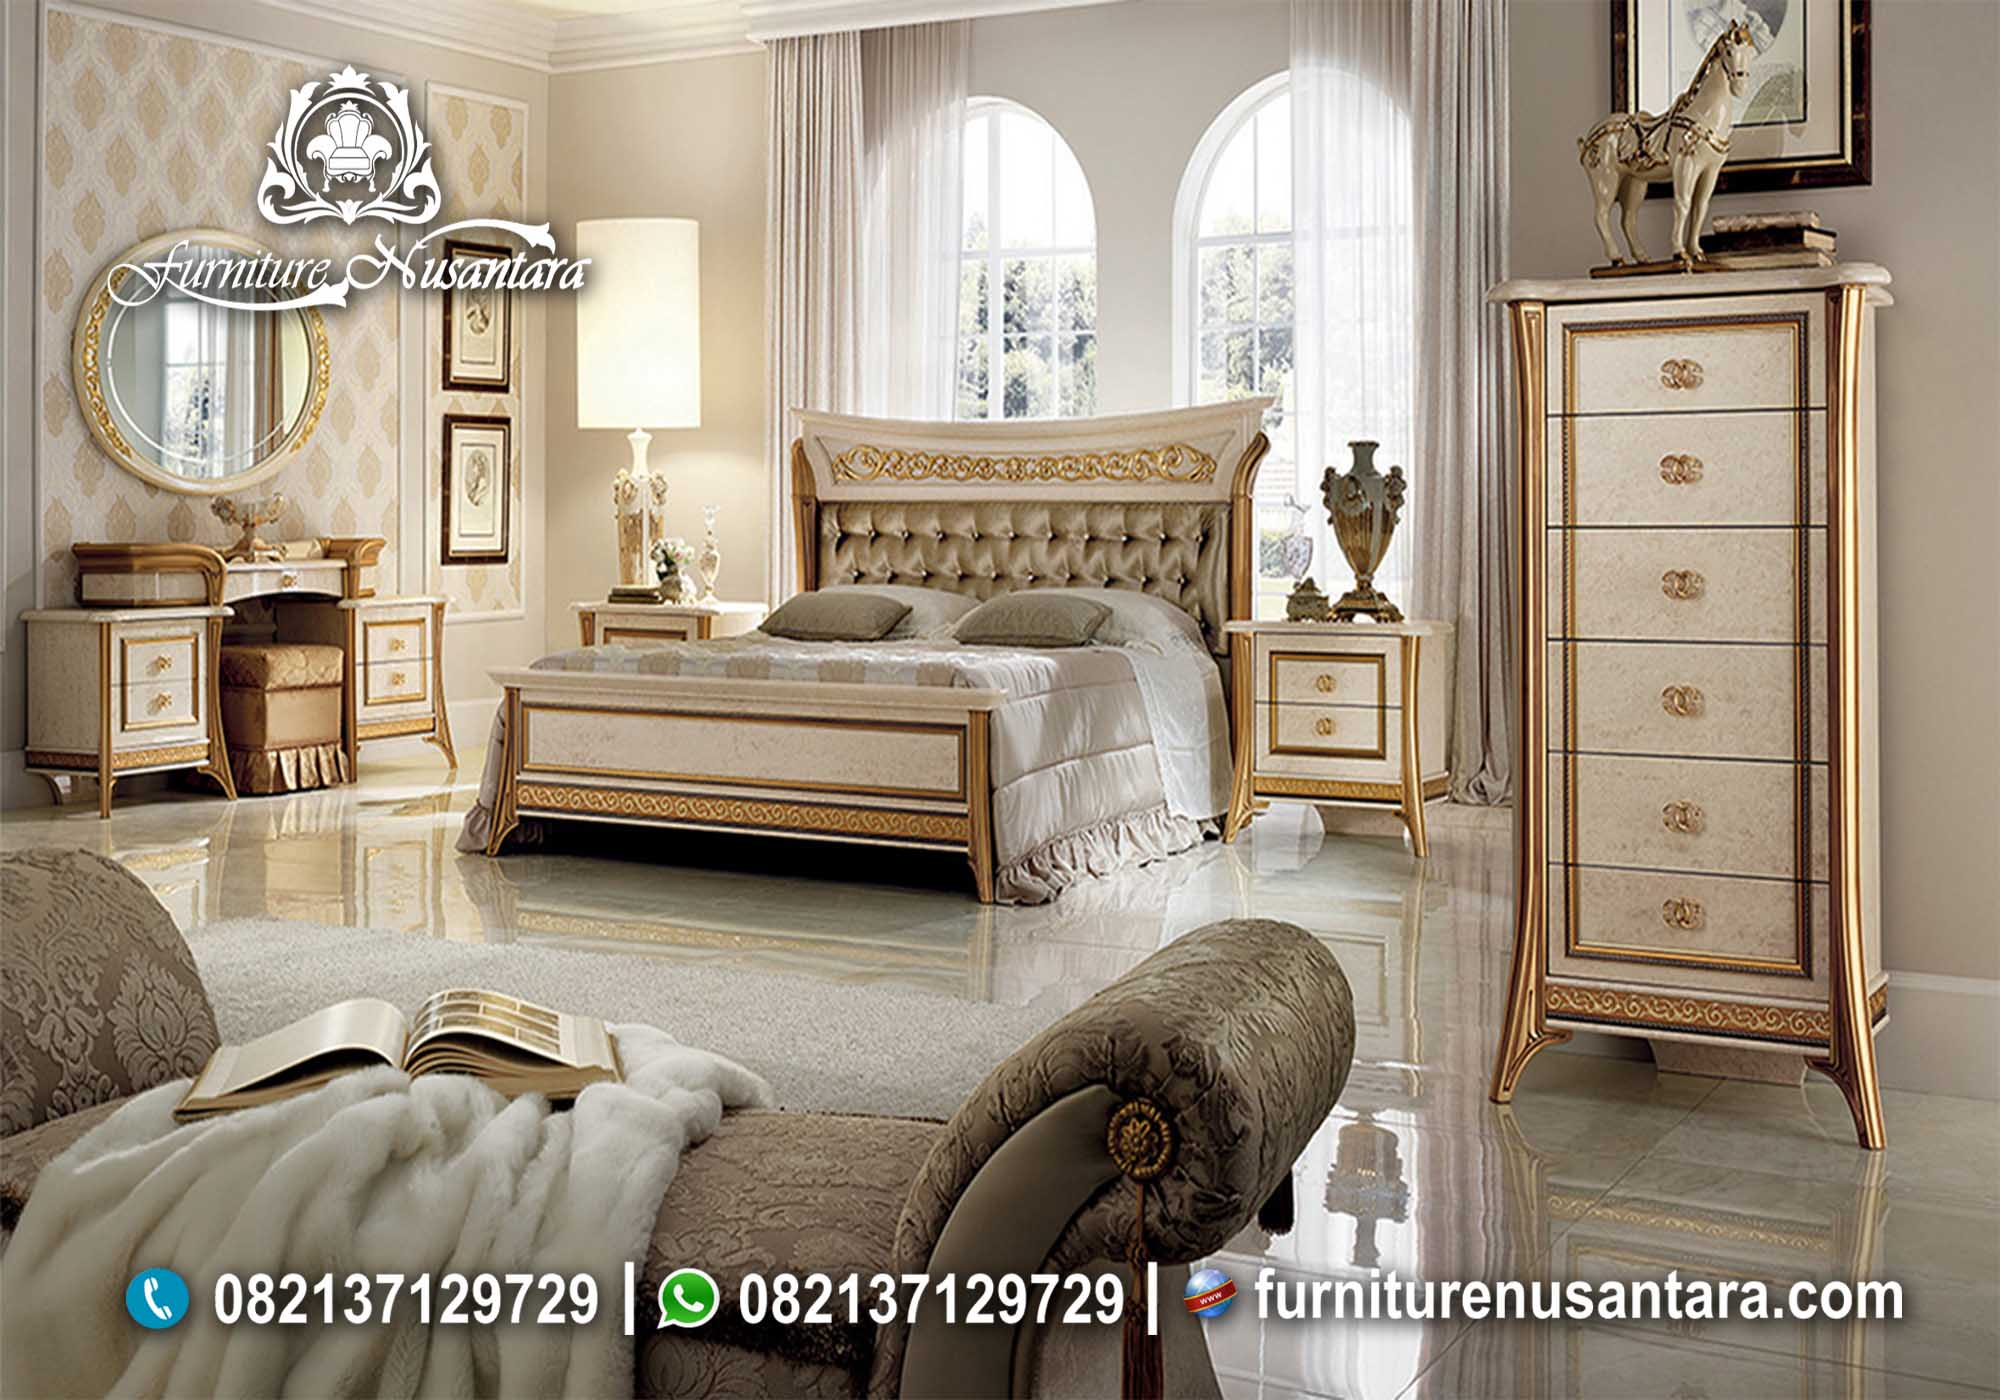 Model Kamar Luxury Terbaik KS-95, Furniture Nusantara